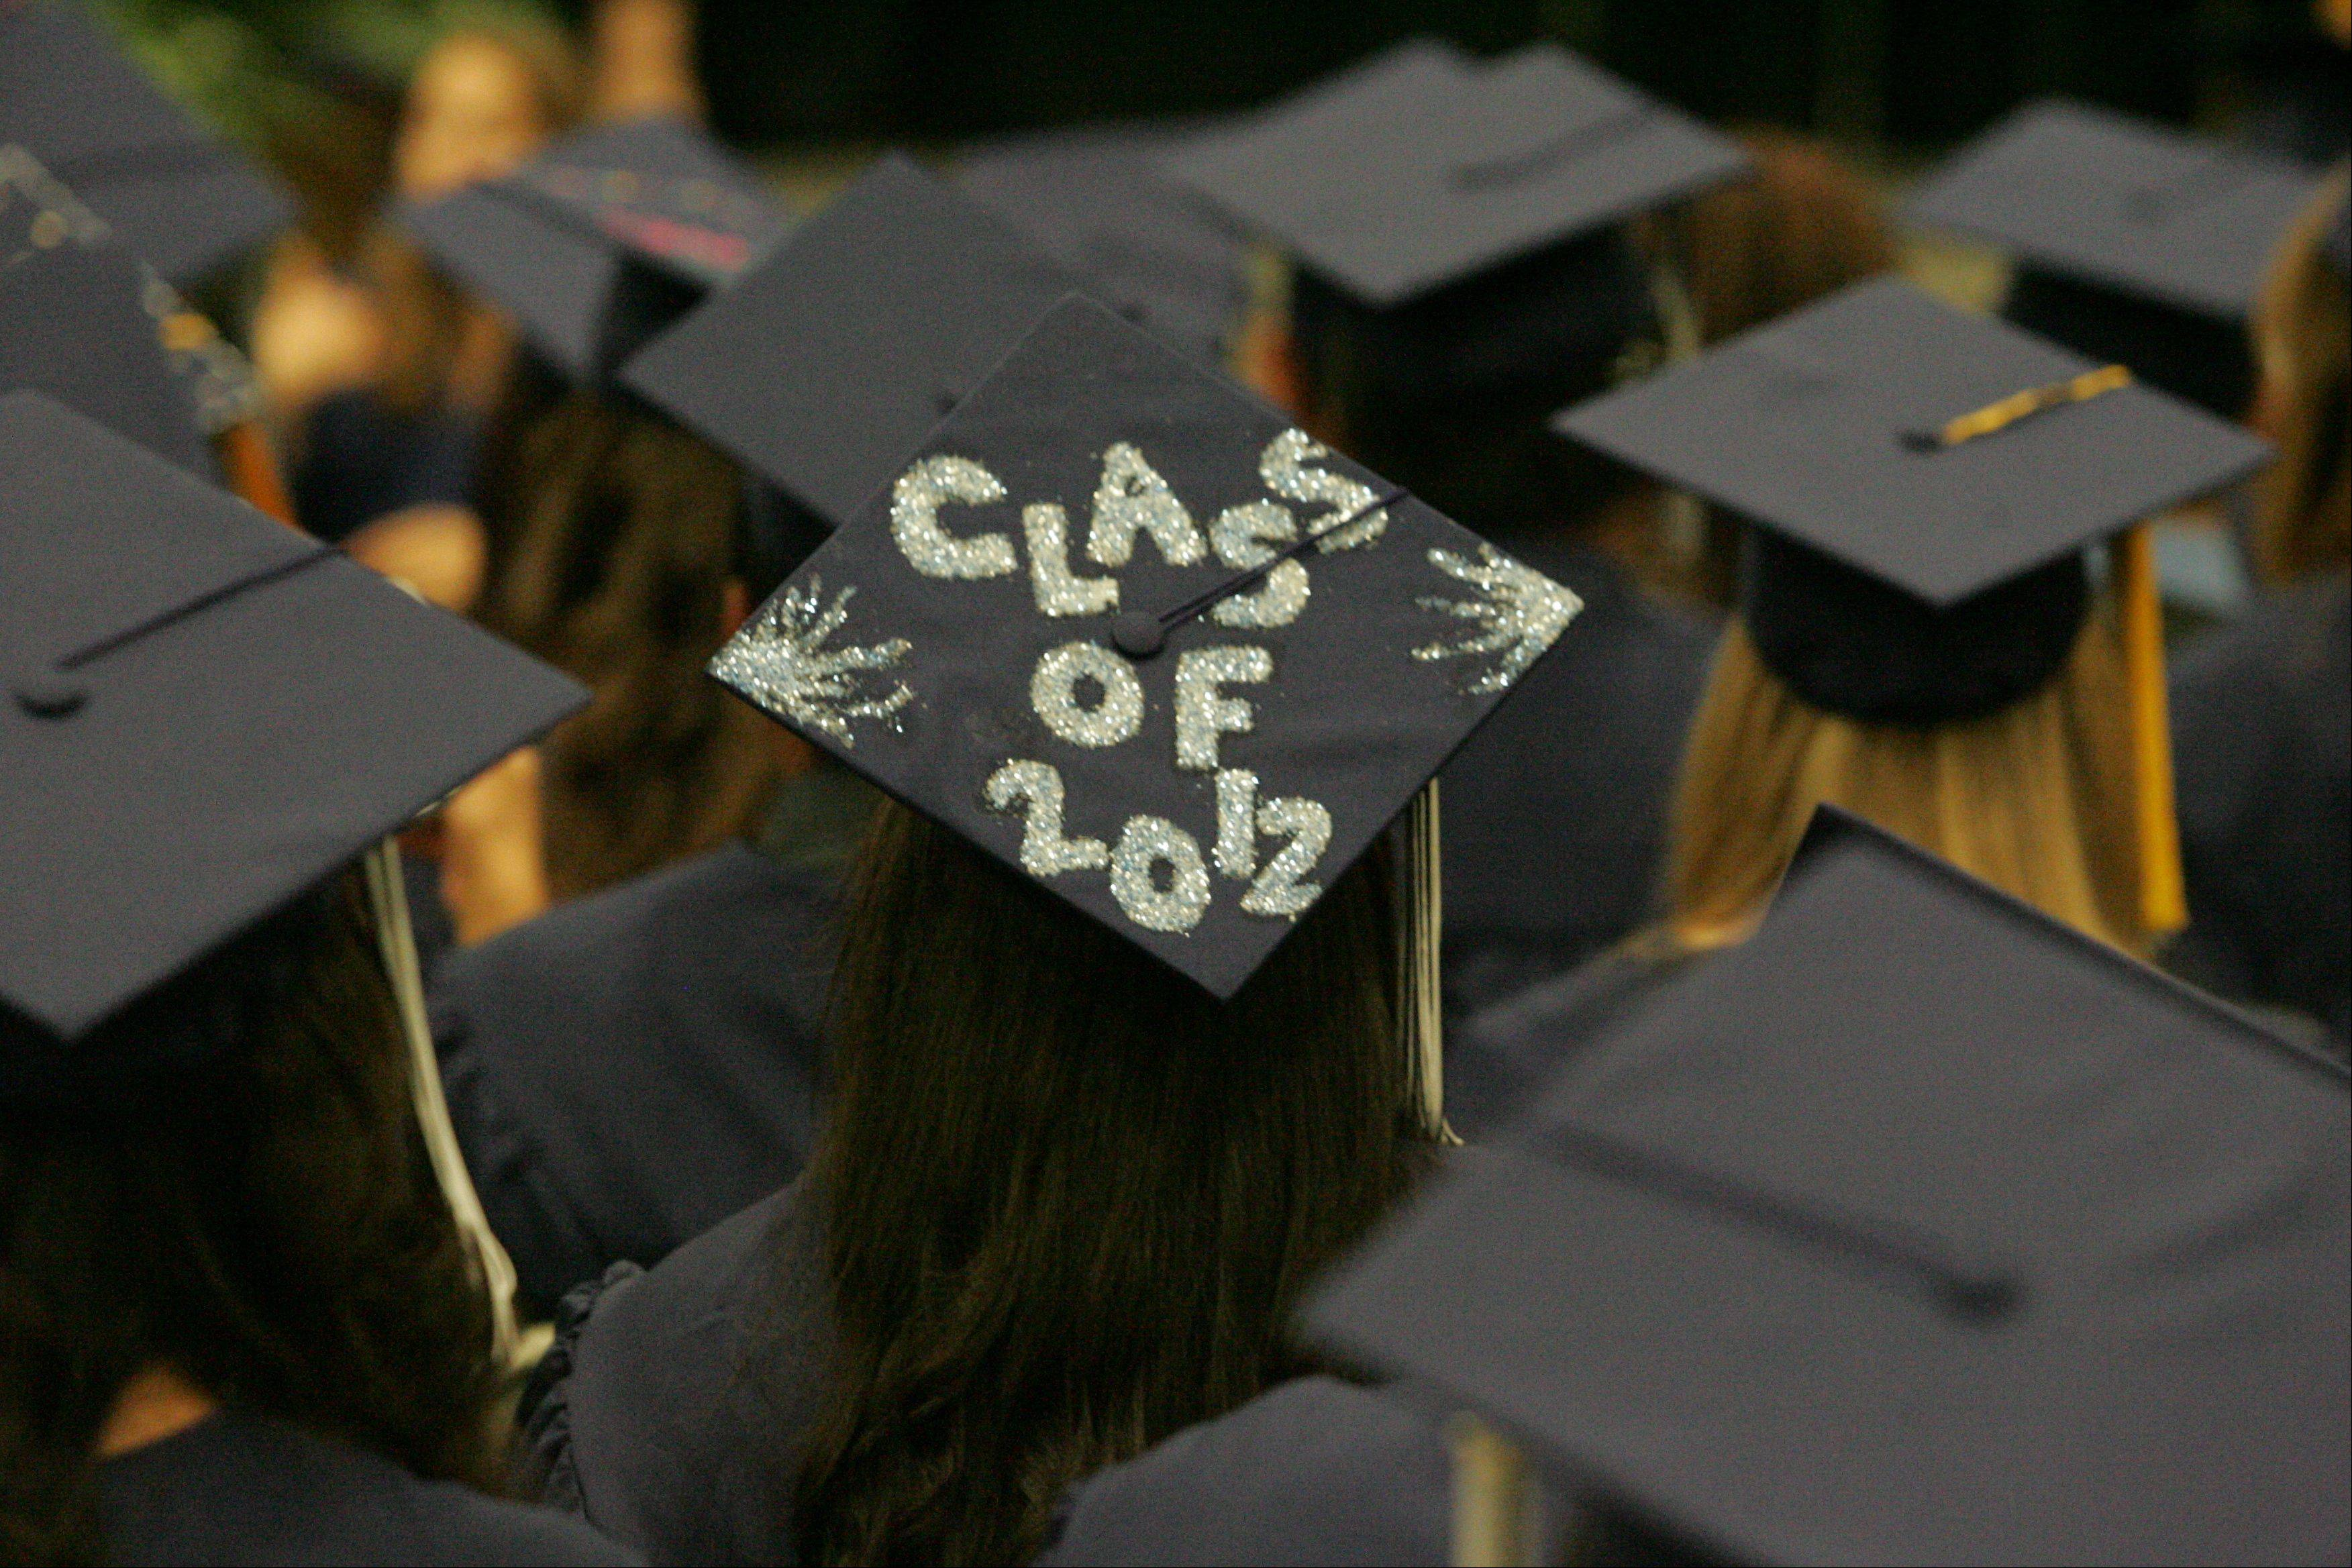 Community High School in West Chicago held its graduation Friday June 1 at the College Of DuPage in Glen Ellyn